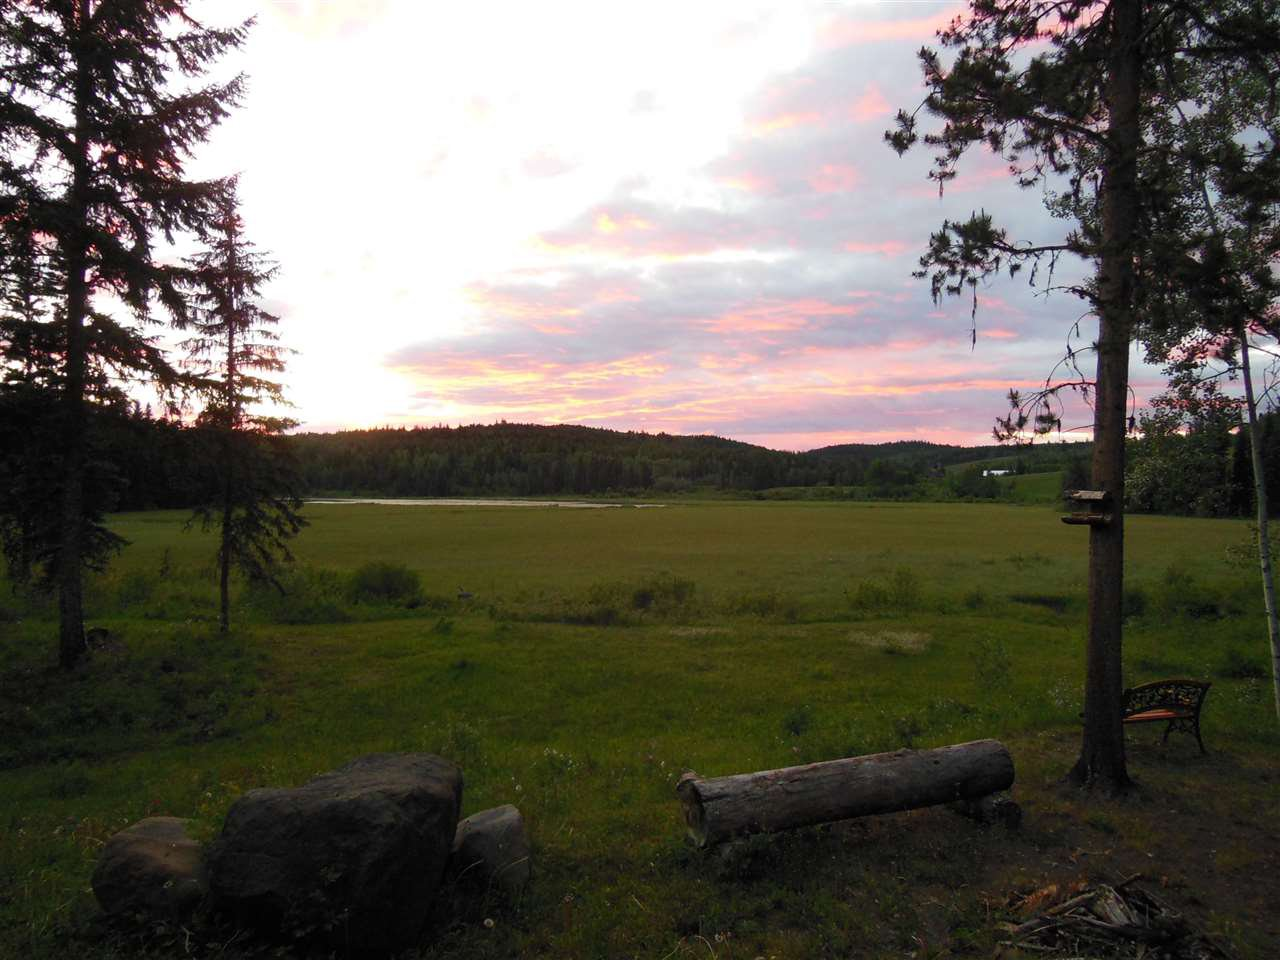 Photo 31: Photos: 3535 WESTWICK PIT Road: 150 Mile House House for sale (Williams Lake (Zone 27))  : MLS®# R2488772